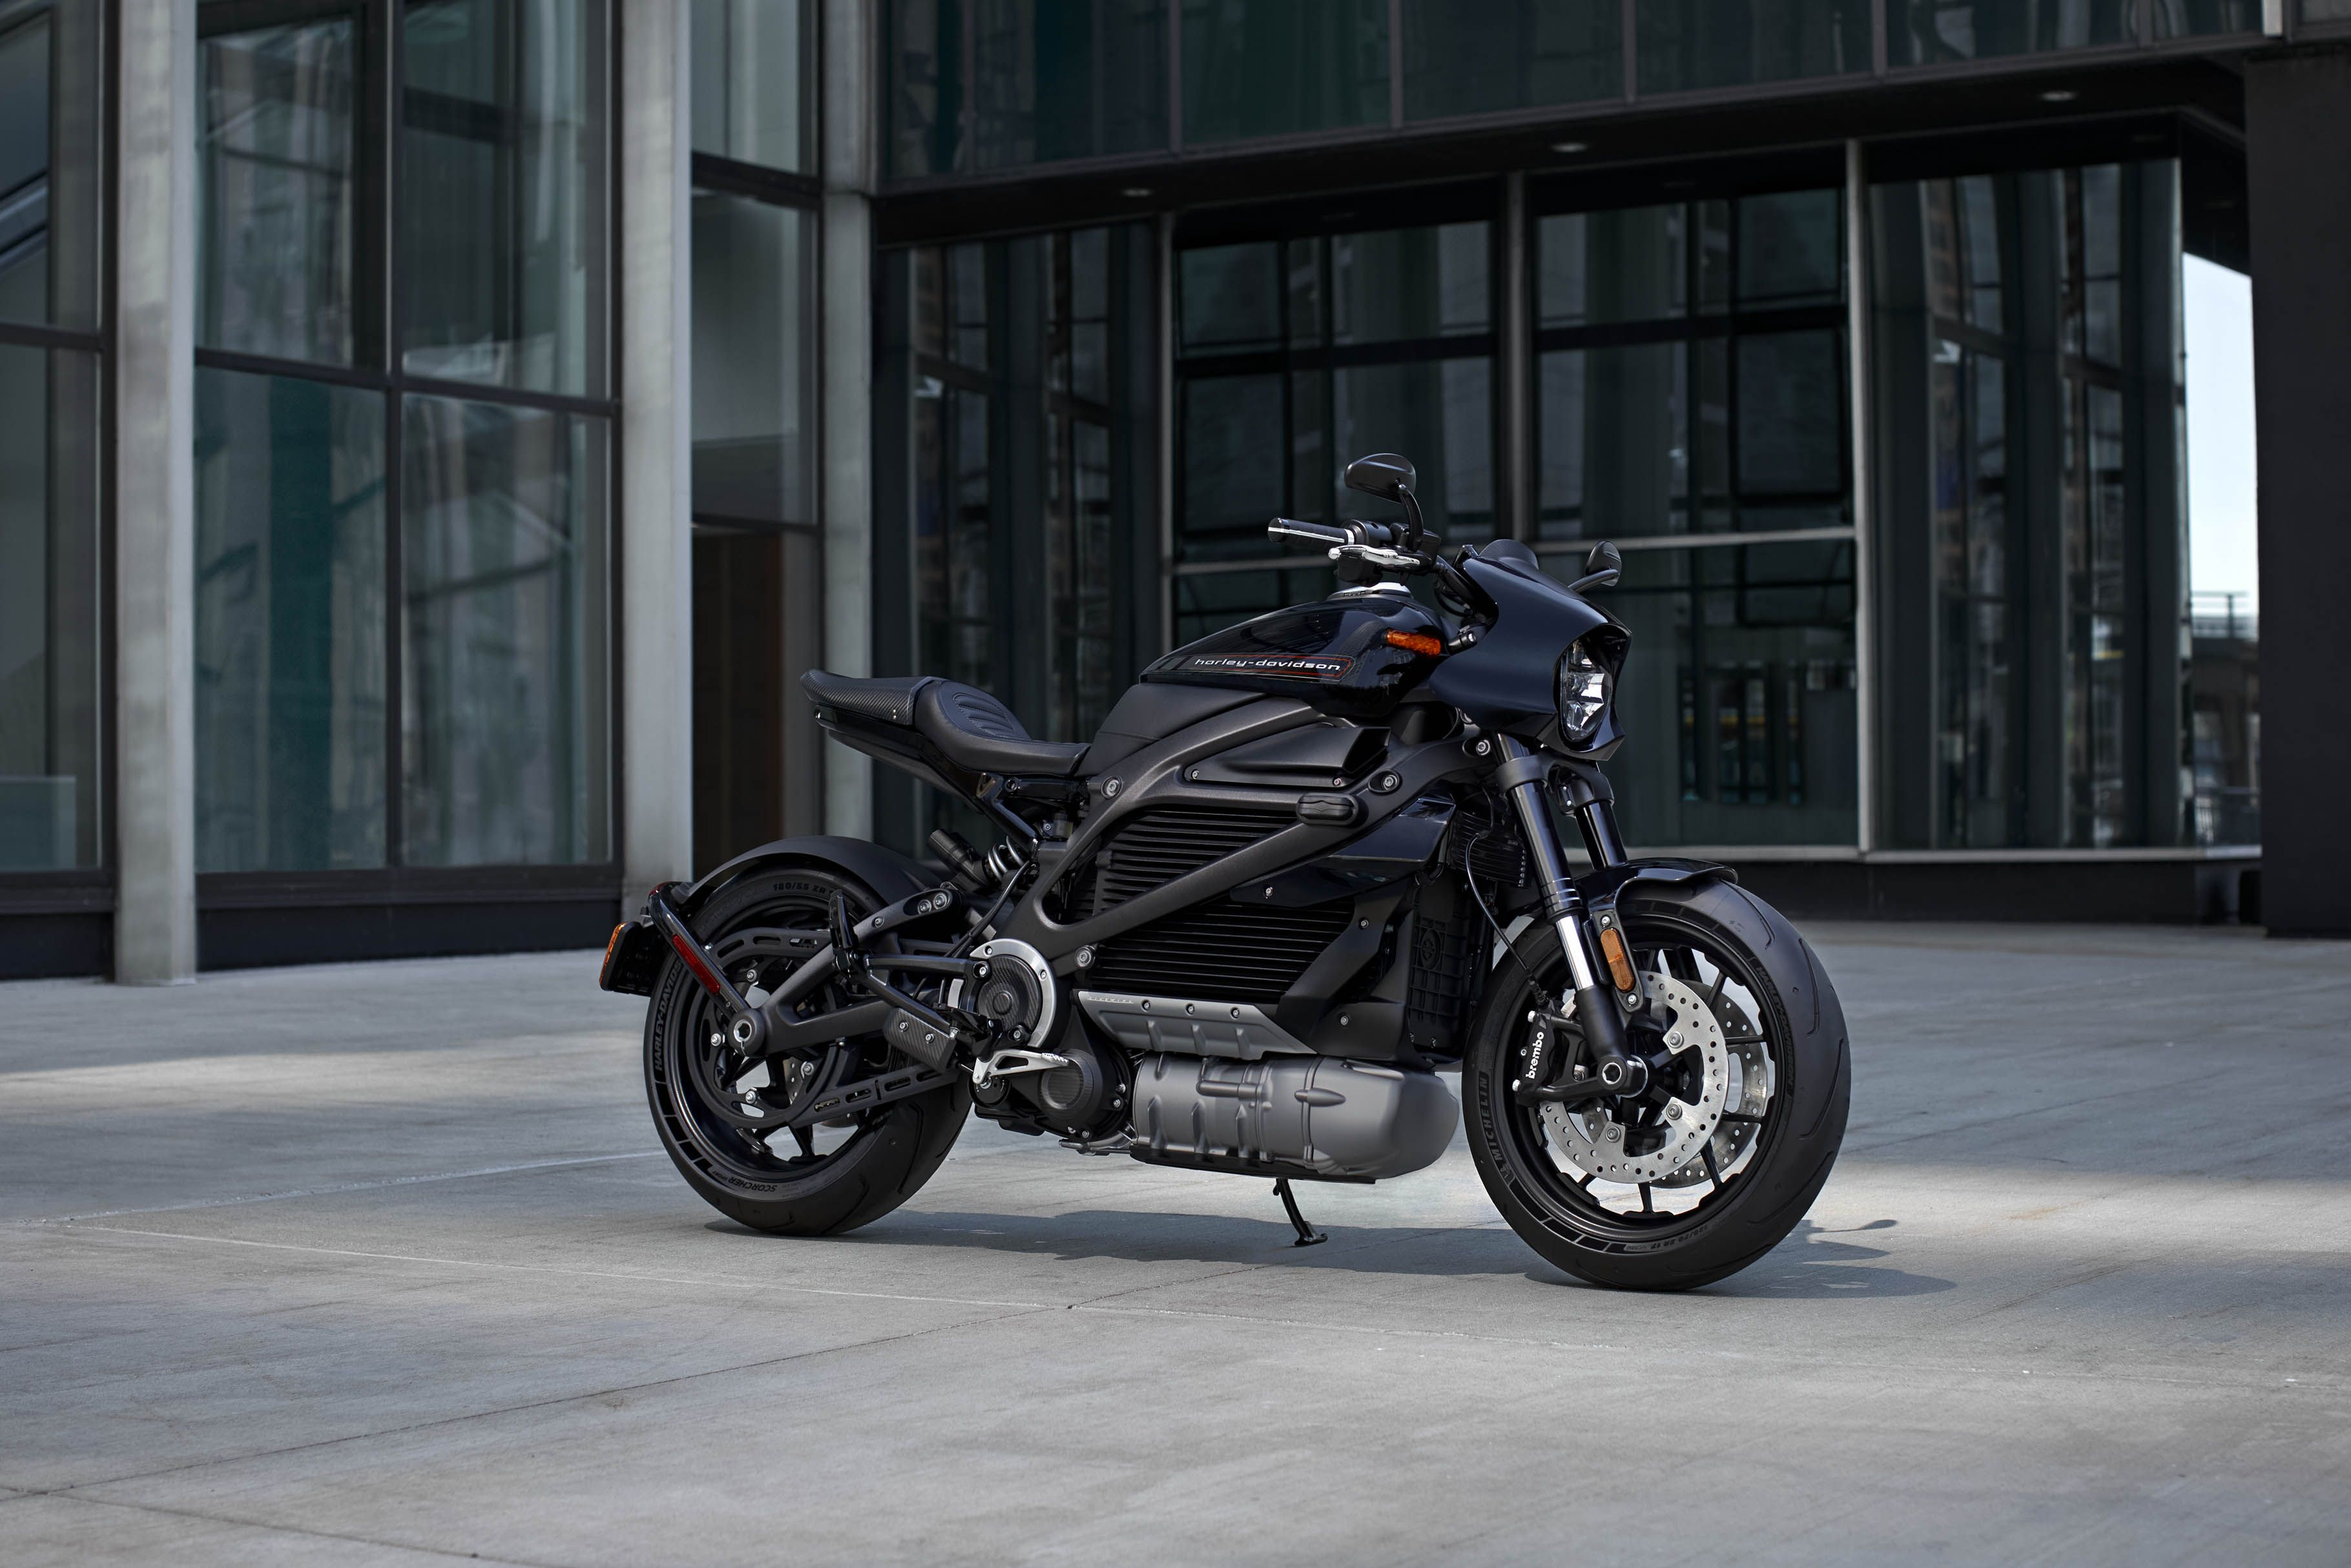 2020 Livewire Electric Motorcycle Harley Davidson Usa Harley Davidson Motorcycle Harley Harley